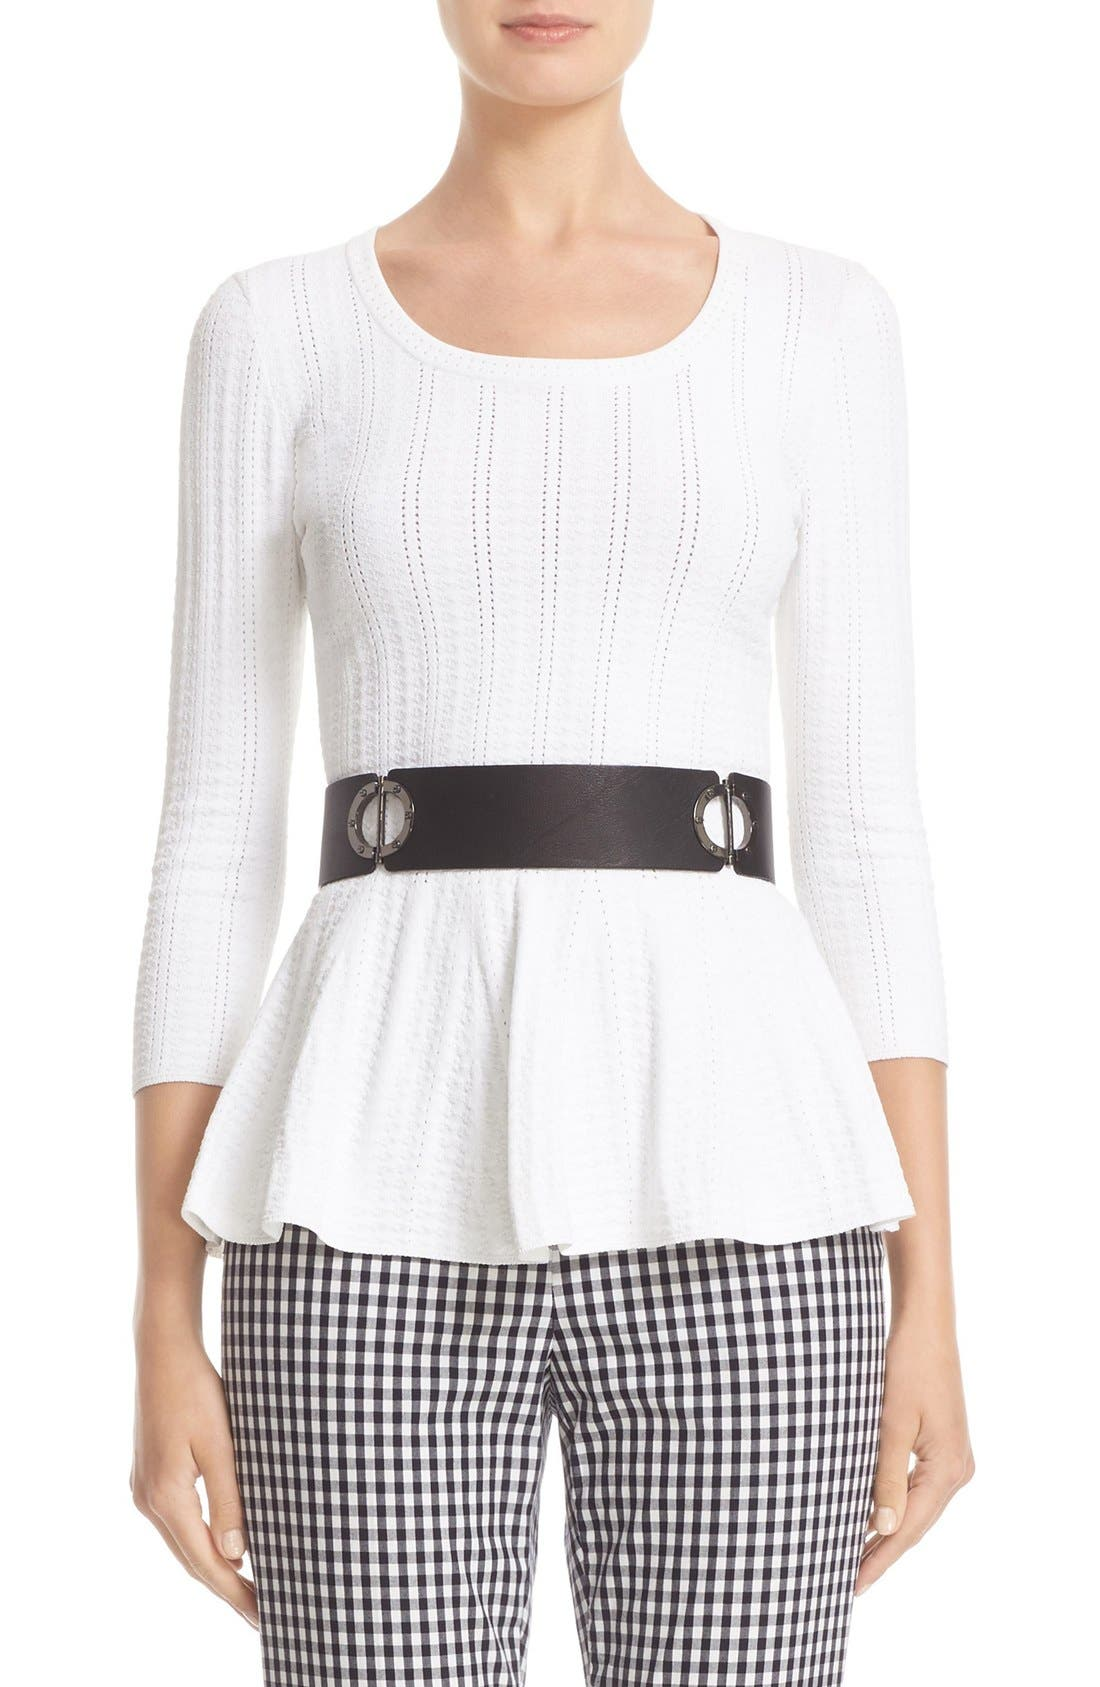 ST. JOHN COLLECTION Icacos Knit Peplum Top